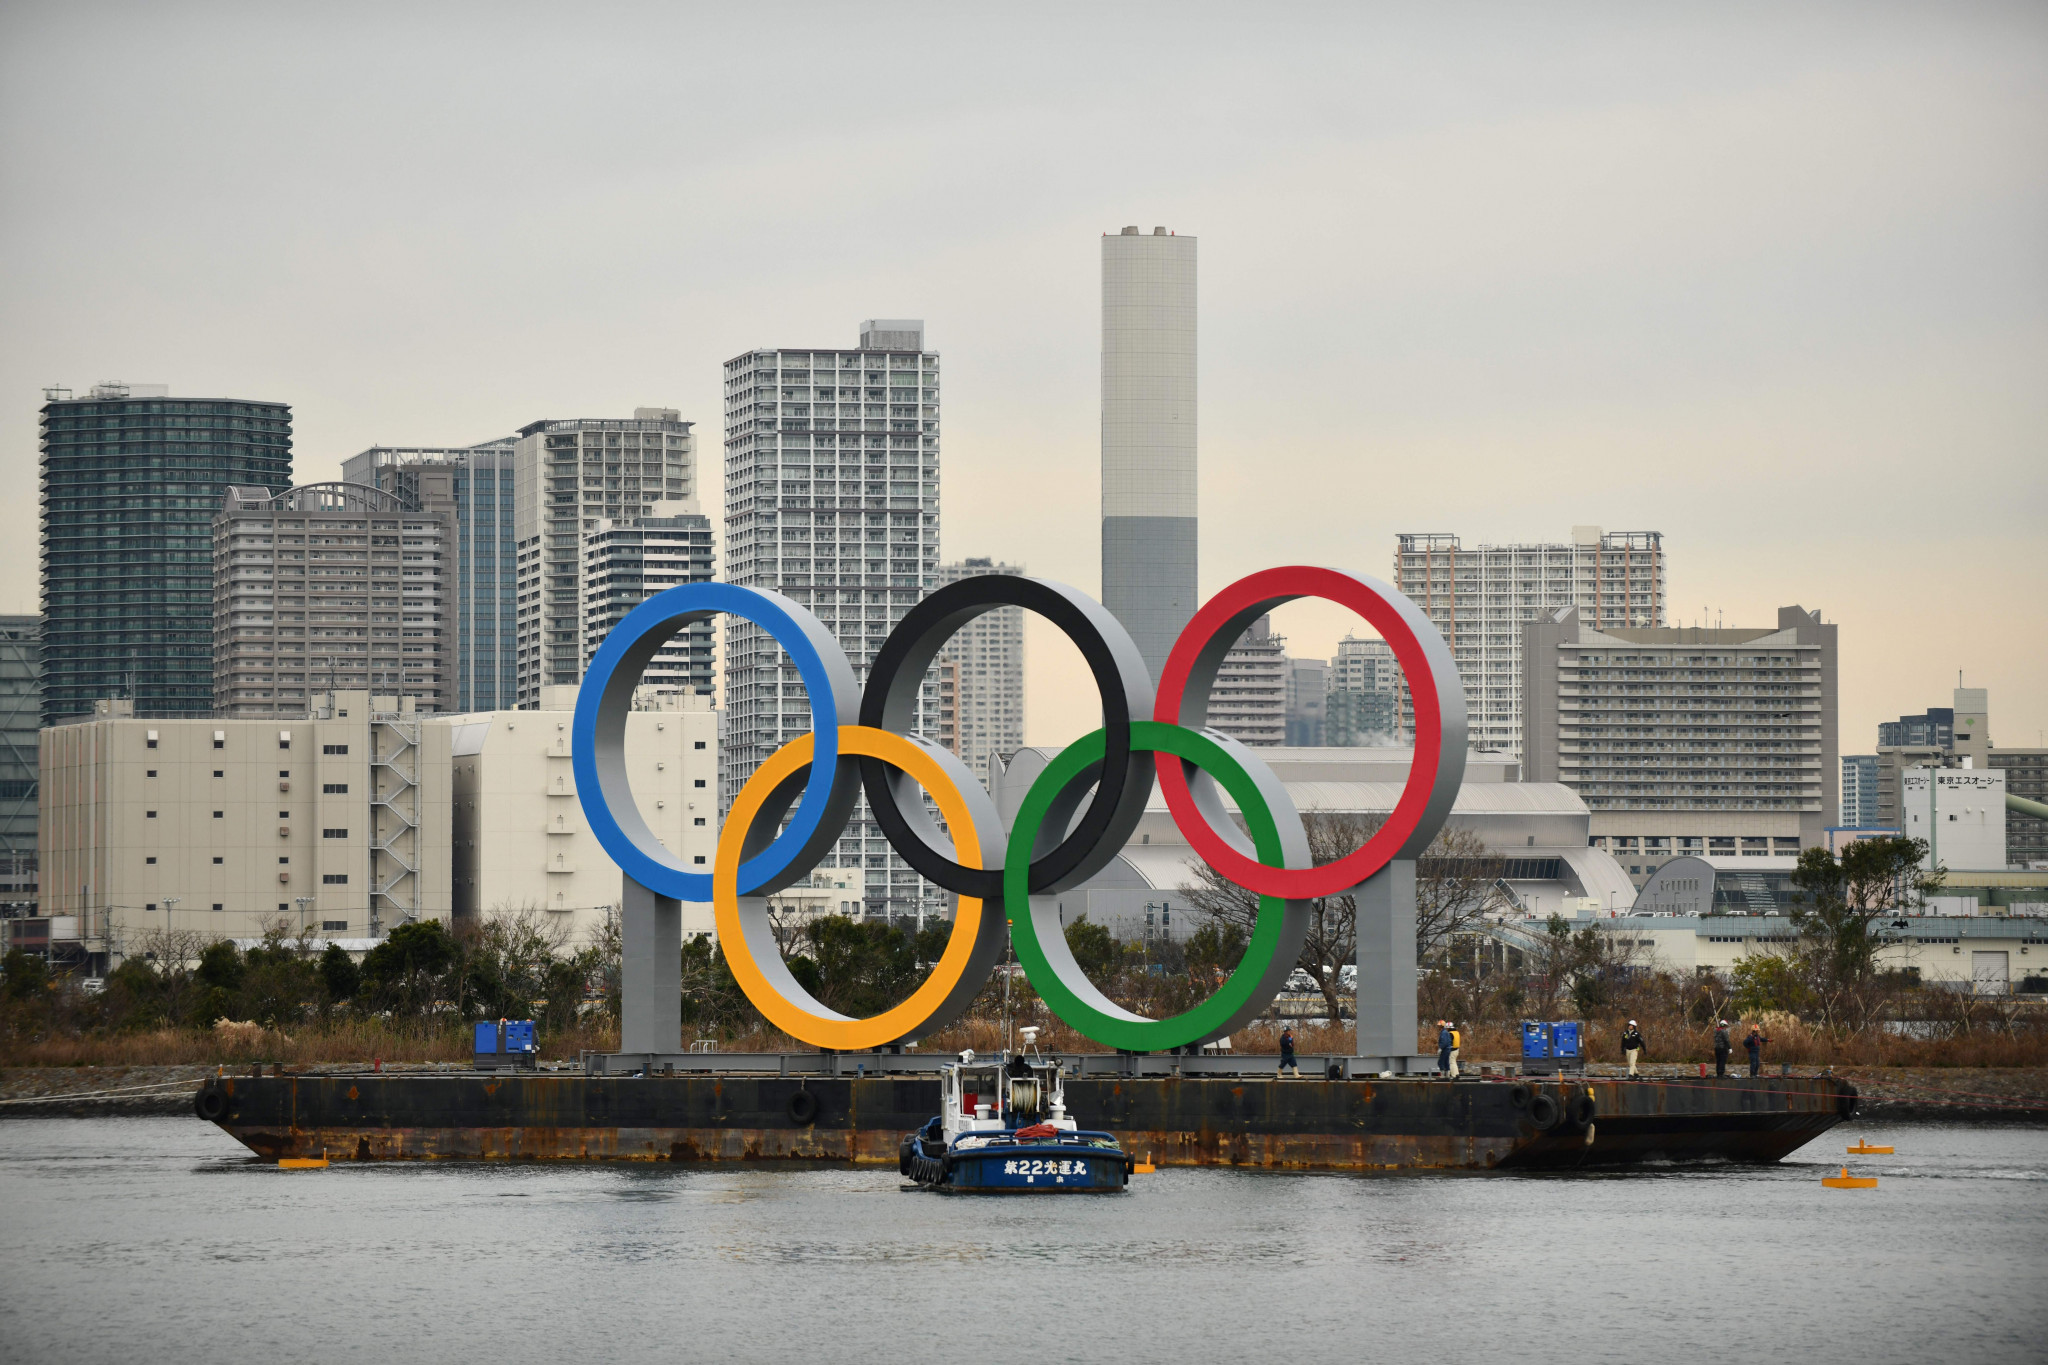 Tokyo Olympic Rings monument temporarily removed for safety inspection